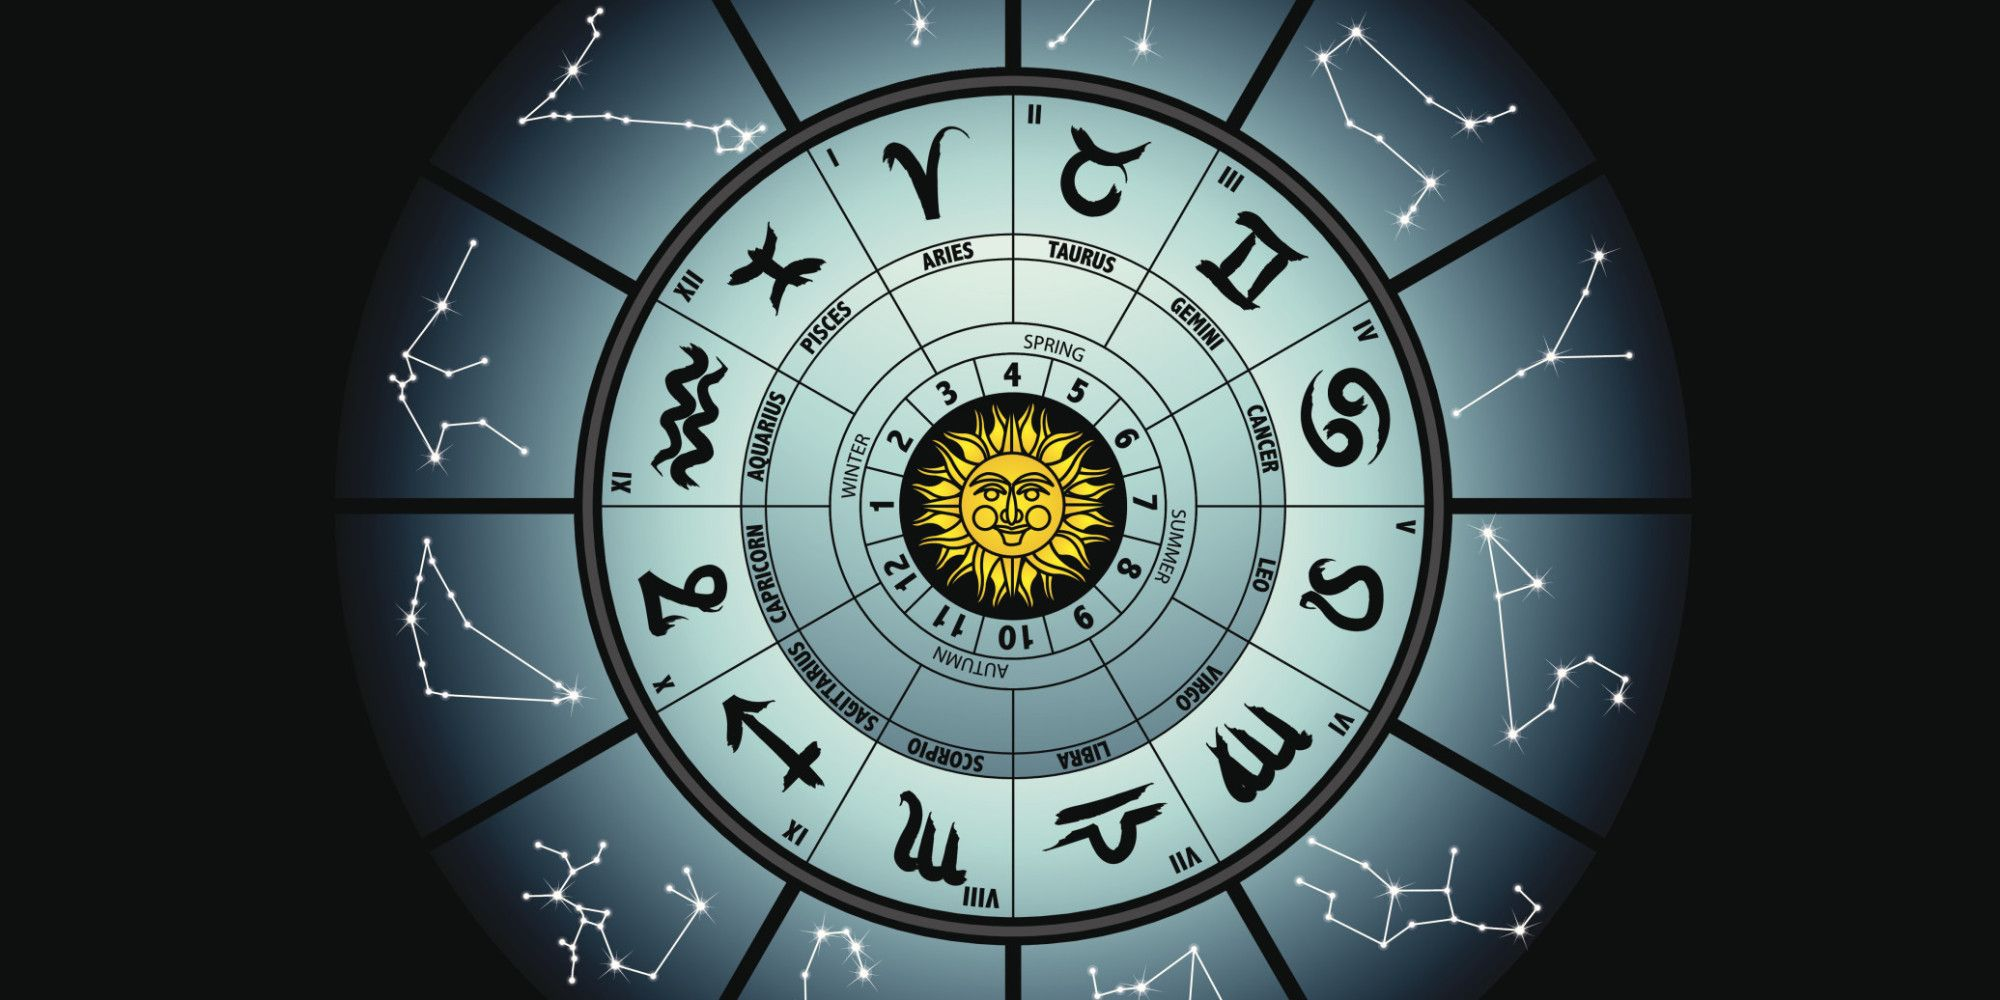 What to eat according to your horoscope vedic astrology what to eat according to your horoscope astrology todayvedic nvjuhfo Gallery